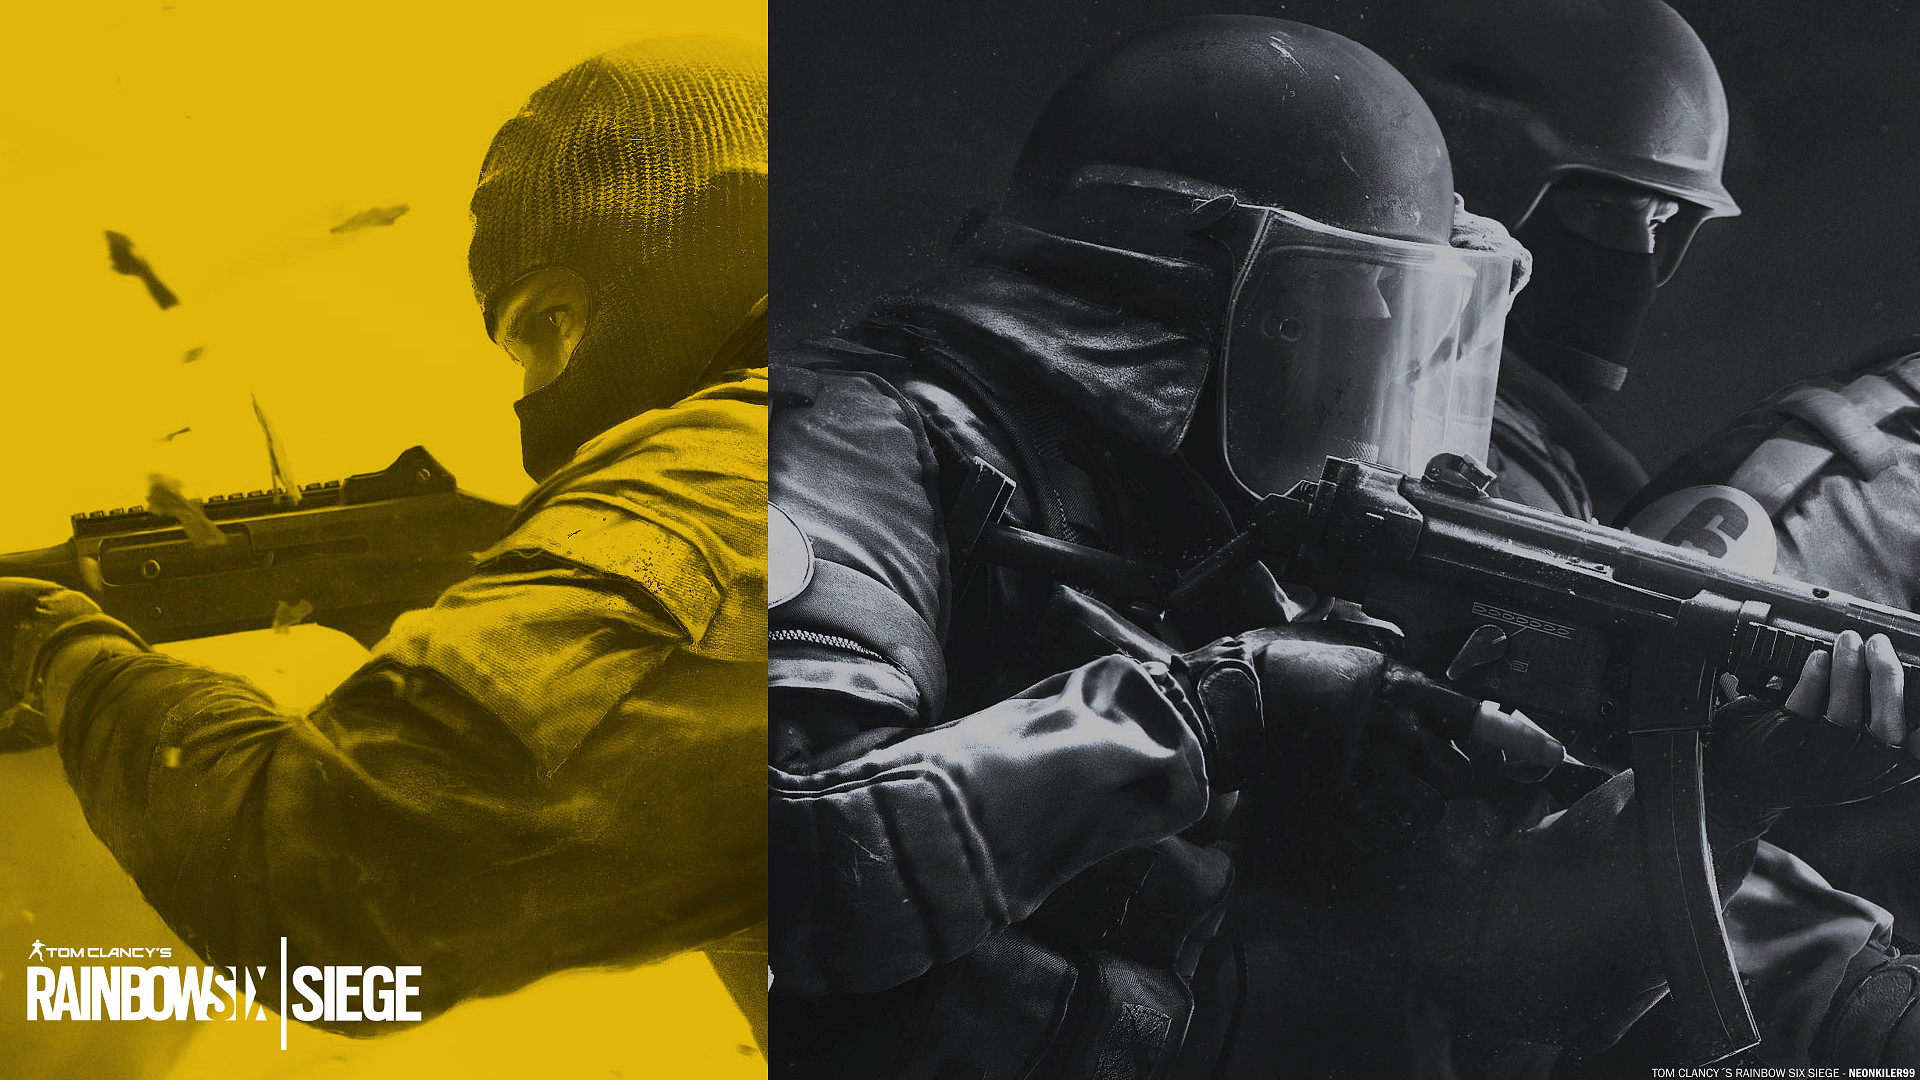 Rainbow Six Seige Wallpaper: Rainbow Six Siege Wallpapers (70+ Images